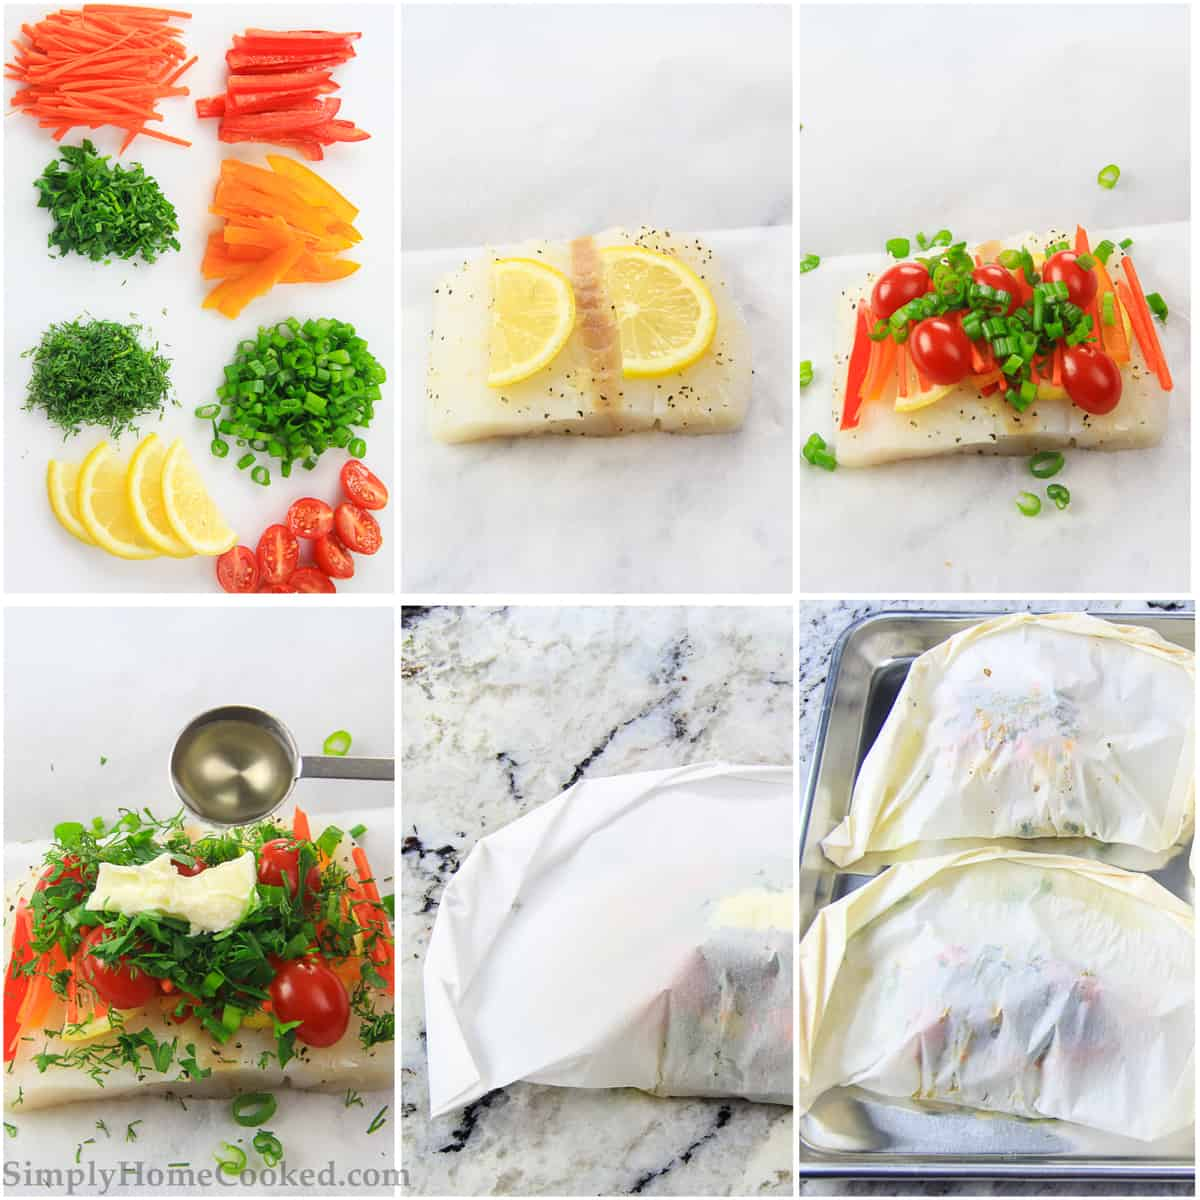 How to make baked cod and roasted vegetables - step by step pictures